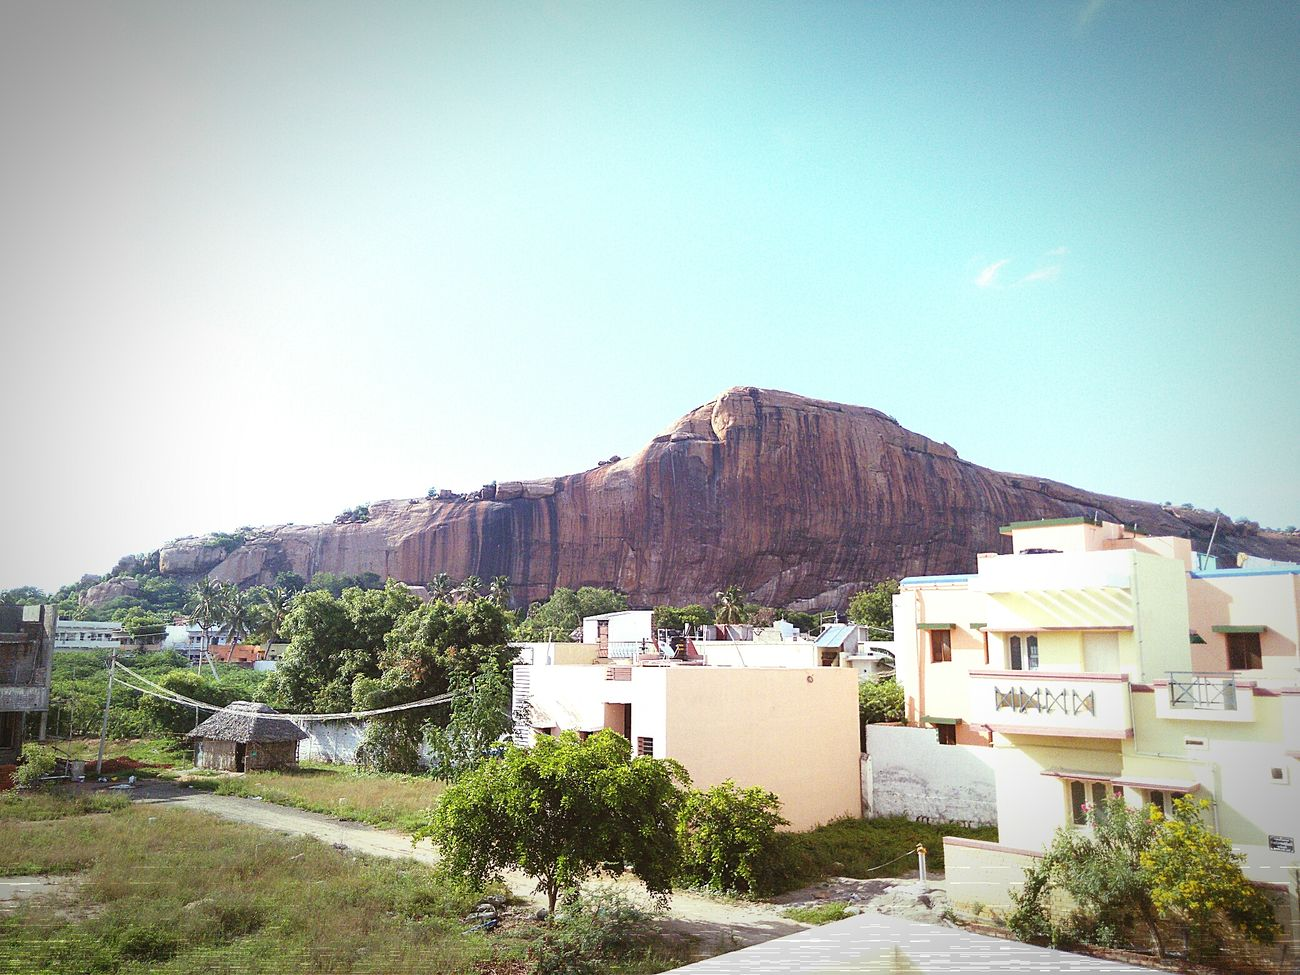 Hillside Madurai Landscape The Traveler - 2015 EyeEm Awards